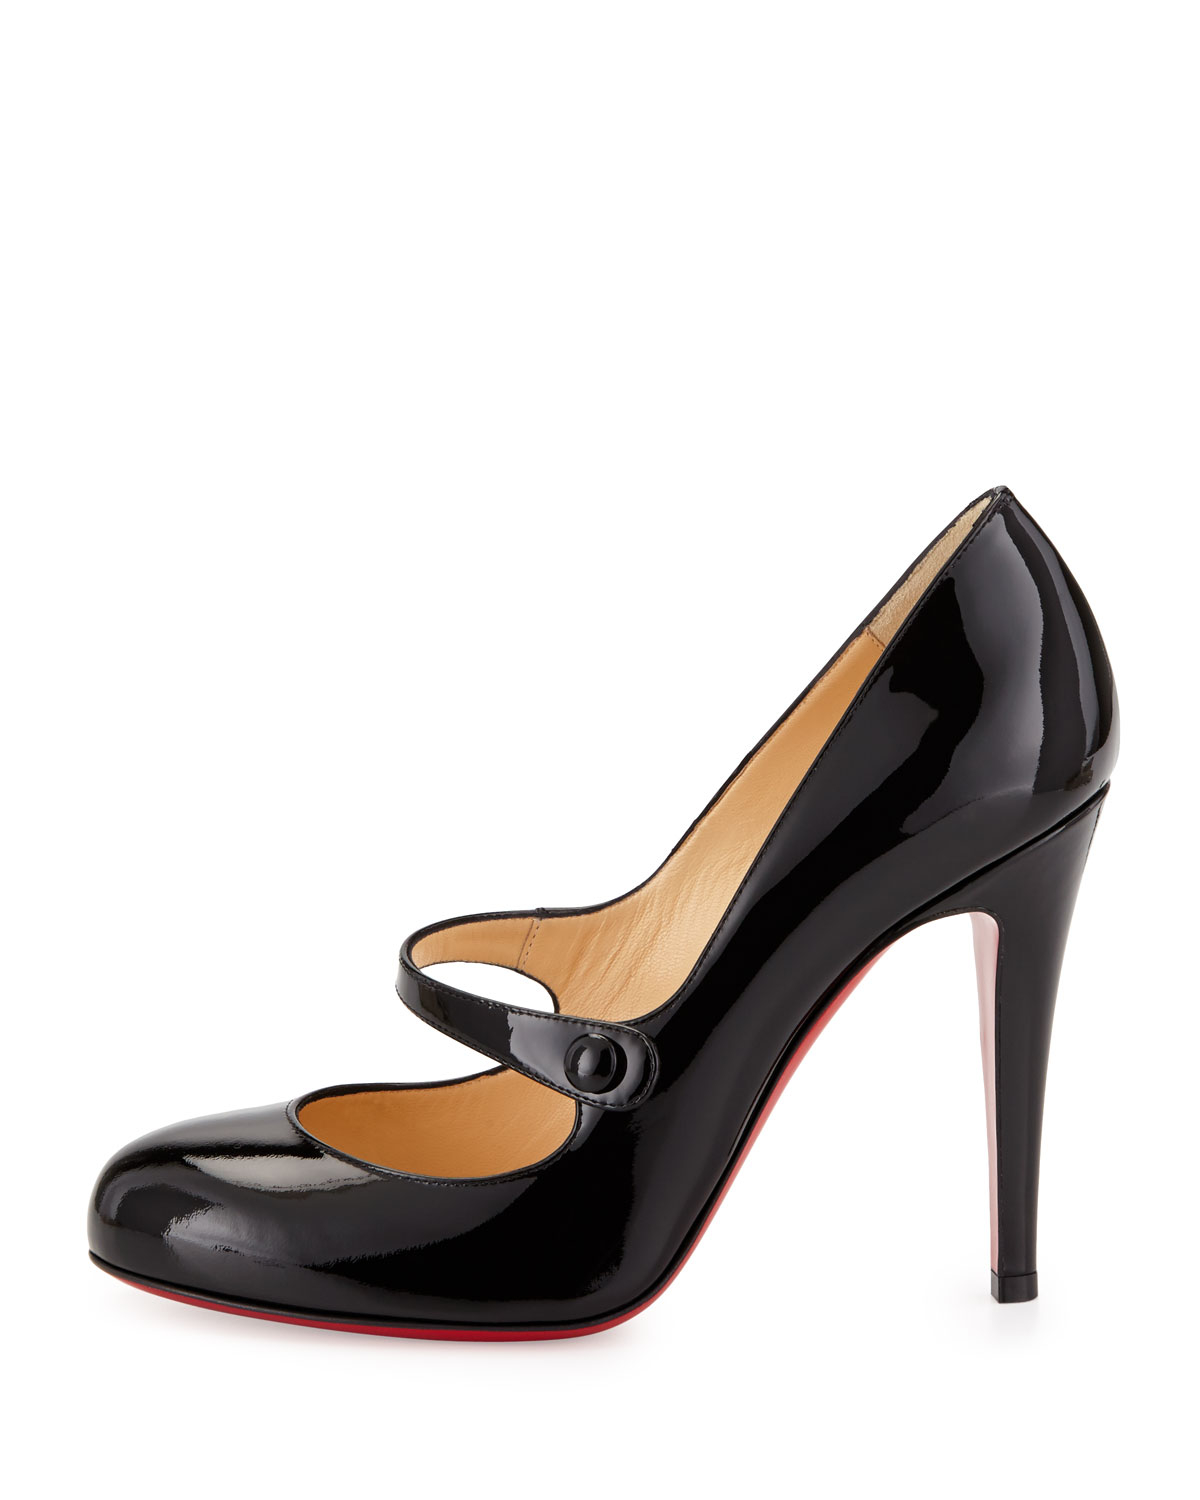 4c4002b53c88 Lyst - Christian Louboutin Charleen Mary Jane Red Sole Pump Black in ...